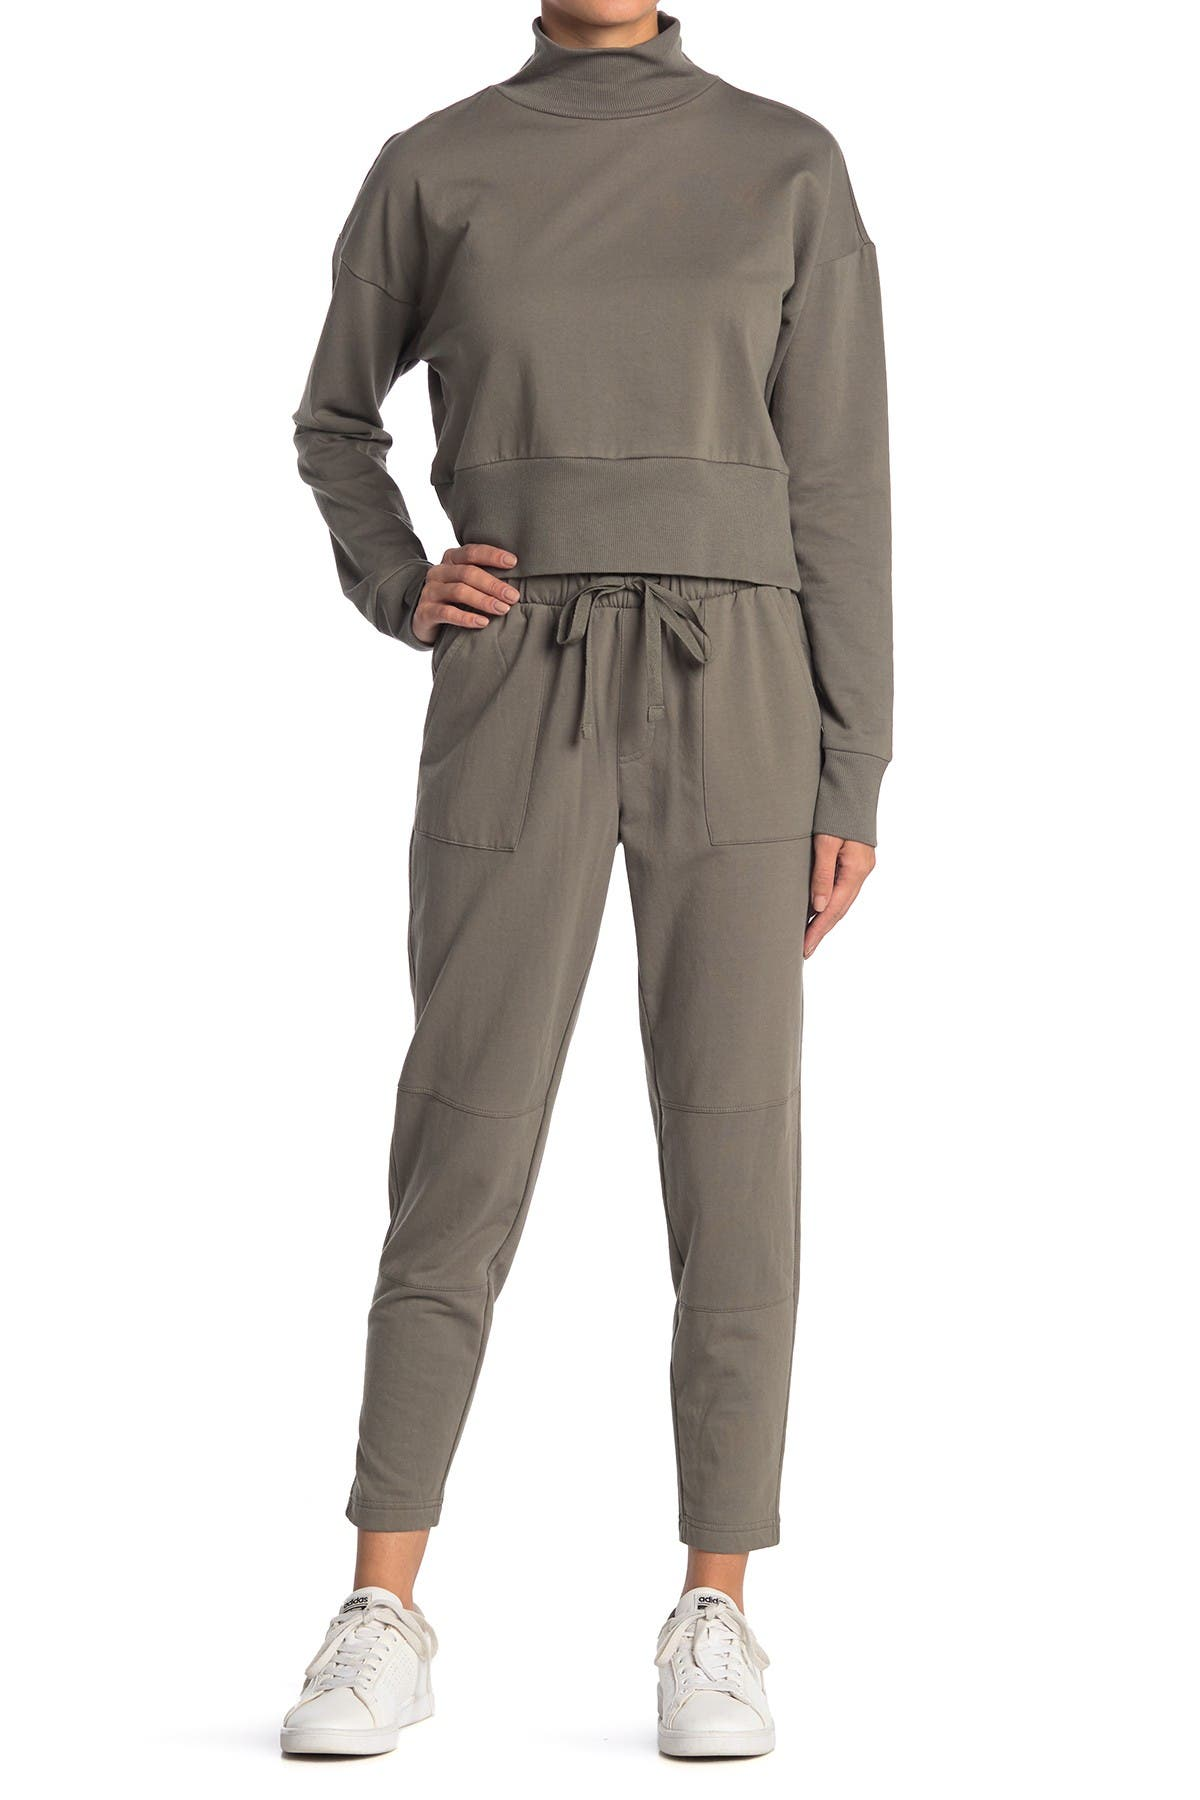 Image of Threads 4 Thought Brienne Pants